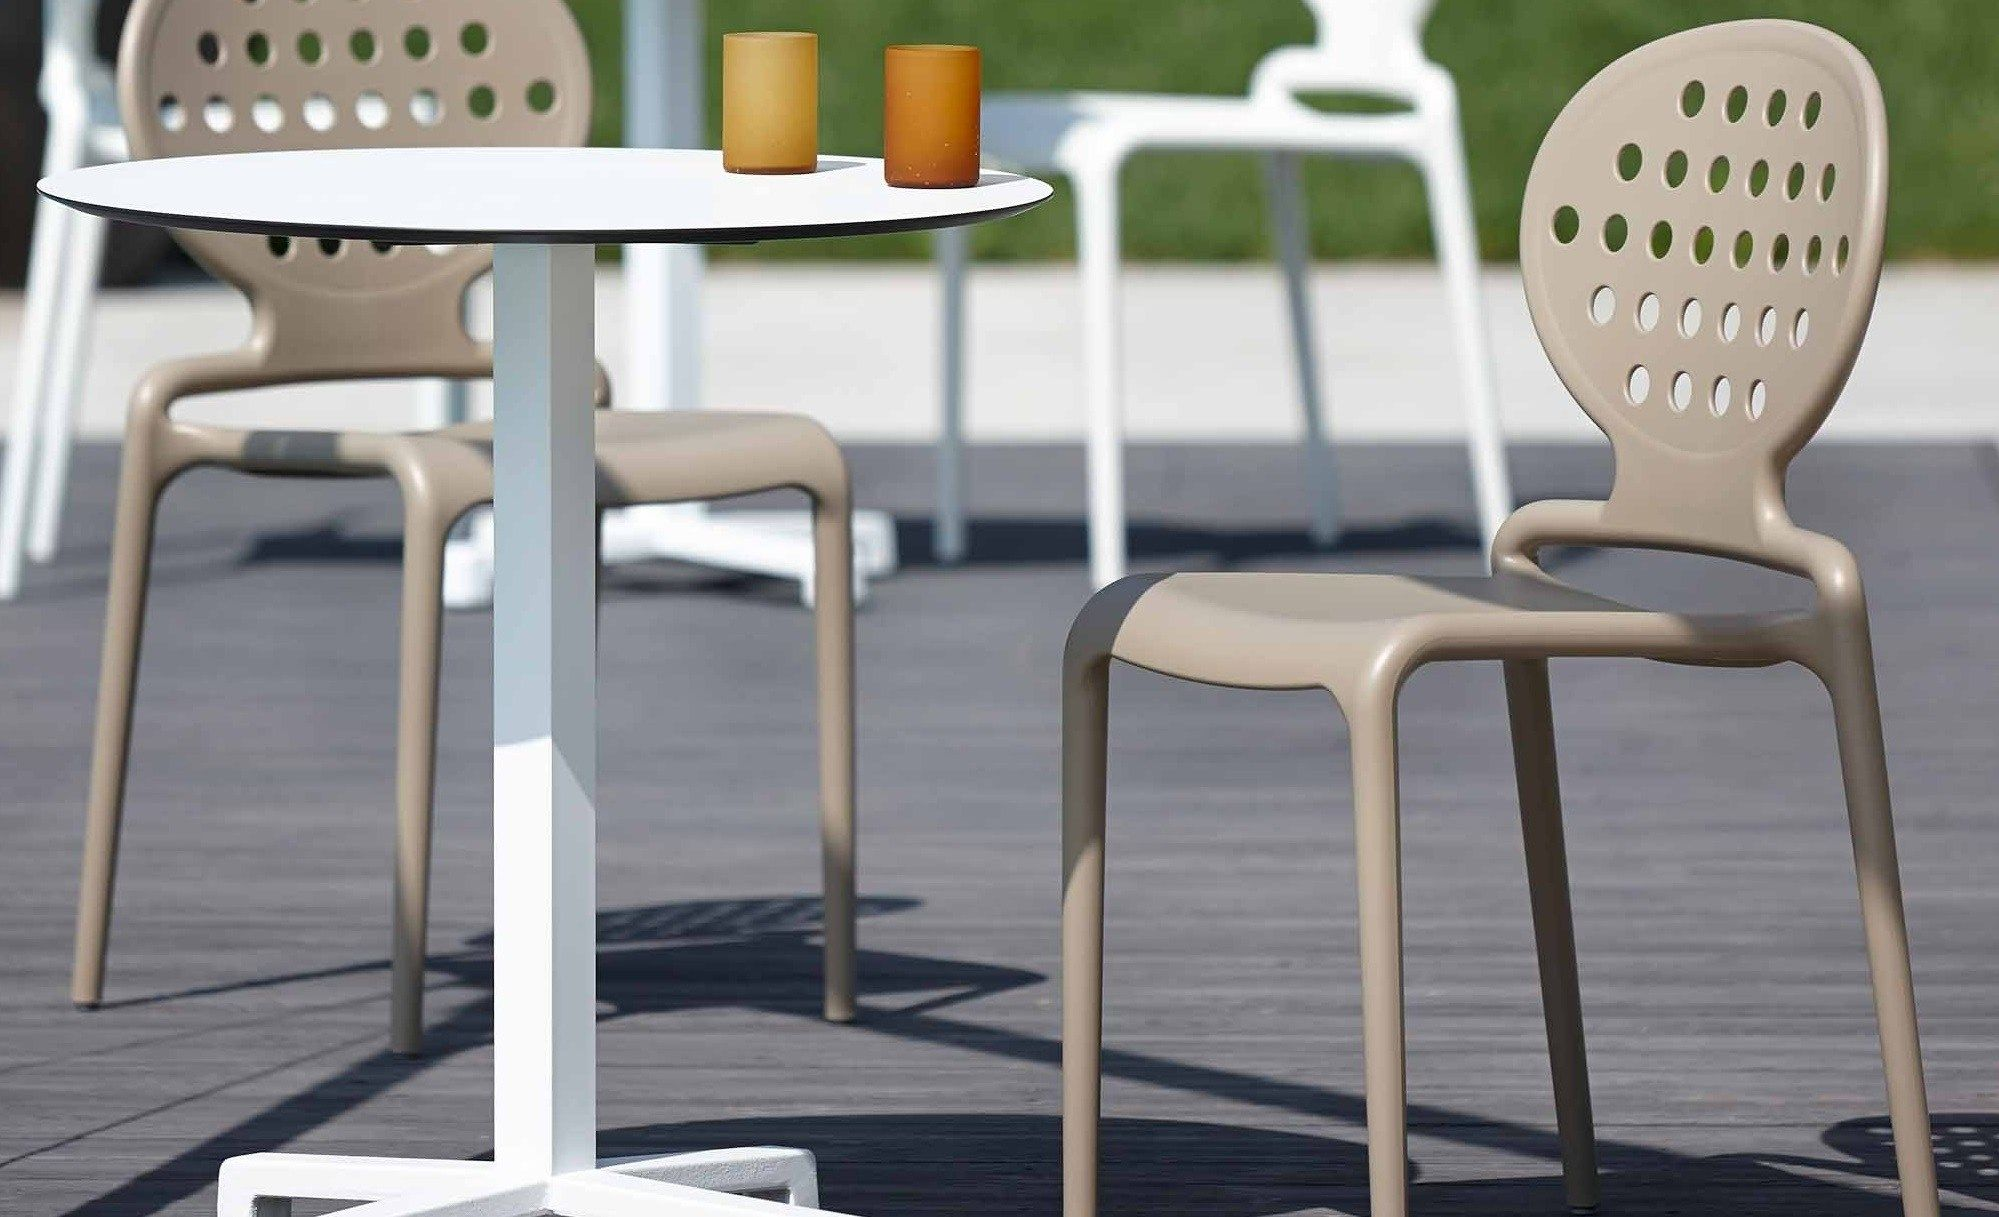 Chaises Terrasse Bar Restaurant Plastique Twik Chaise Empilable Chaise Terrasse Table Bistrot